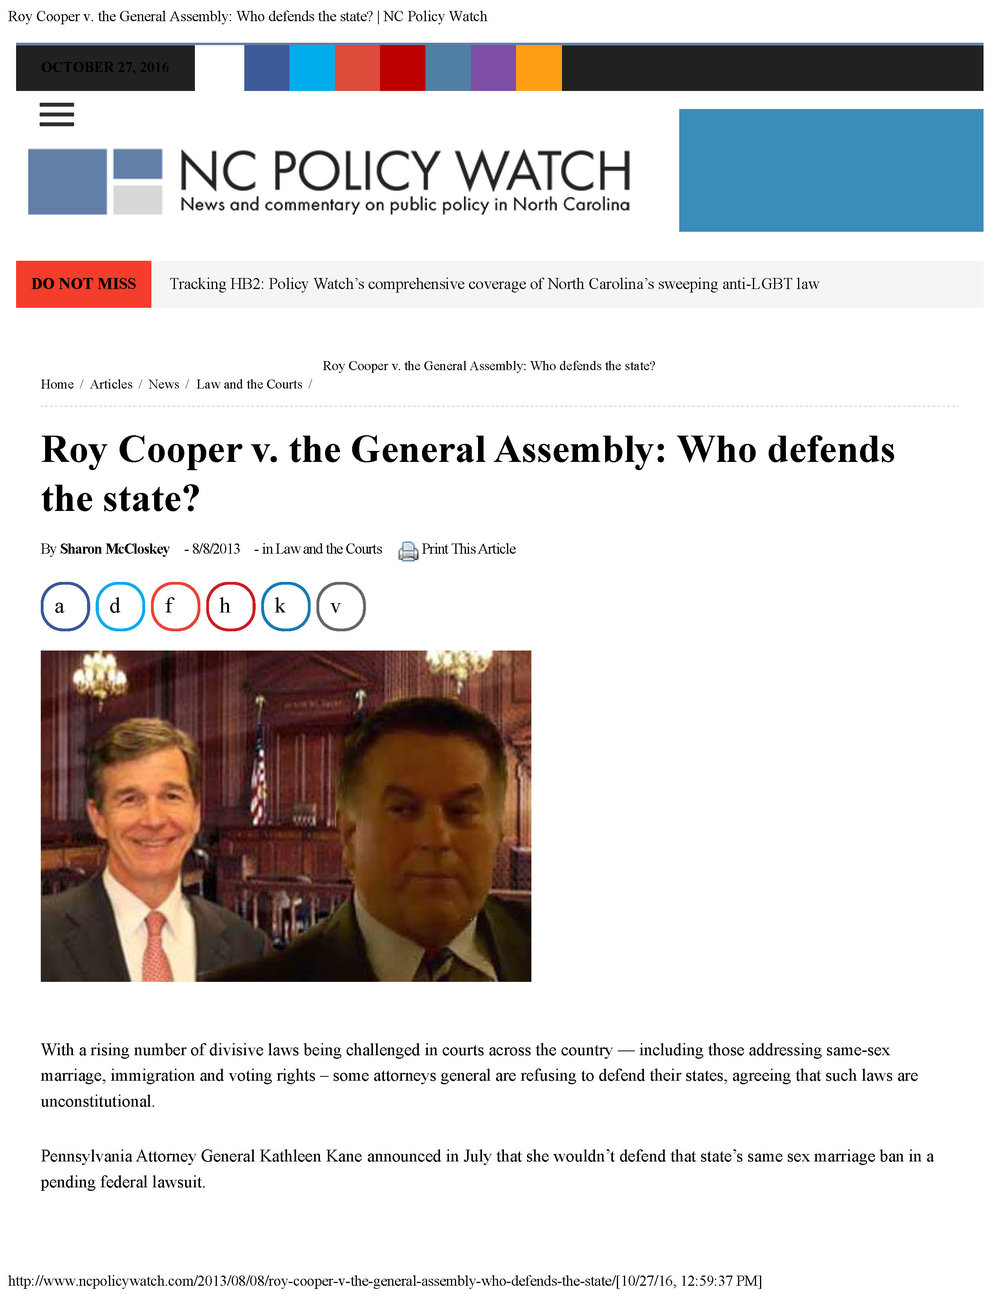 Sharon McCloskey - Roy Cooper v. the General Assembly- Who defends the state- - NC Policy Watch_Page_1.jpg